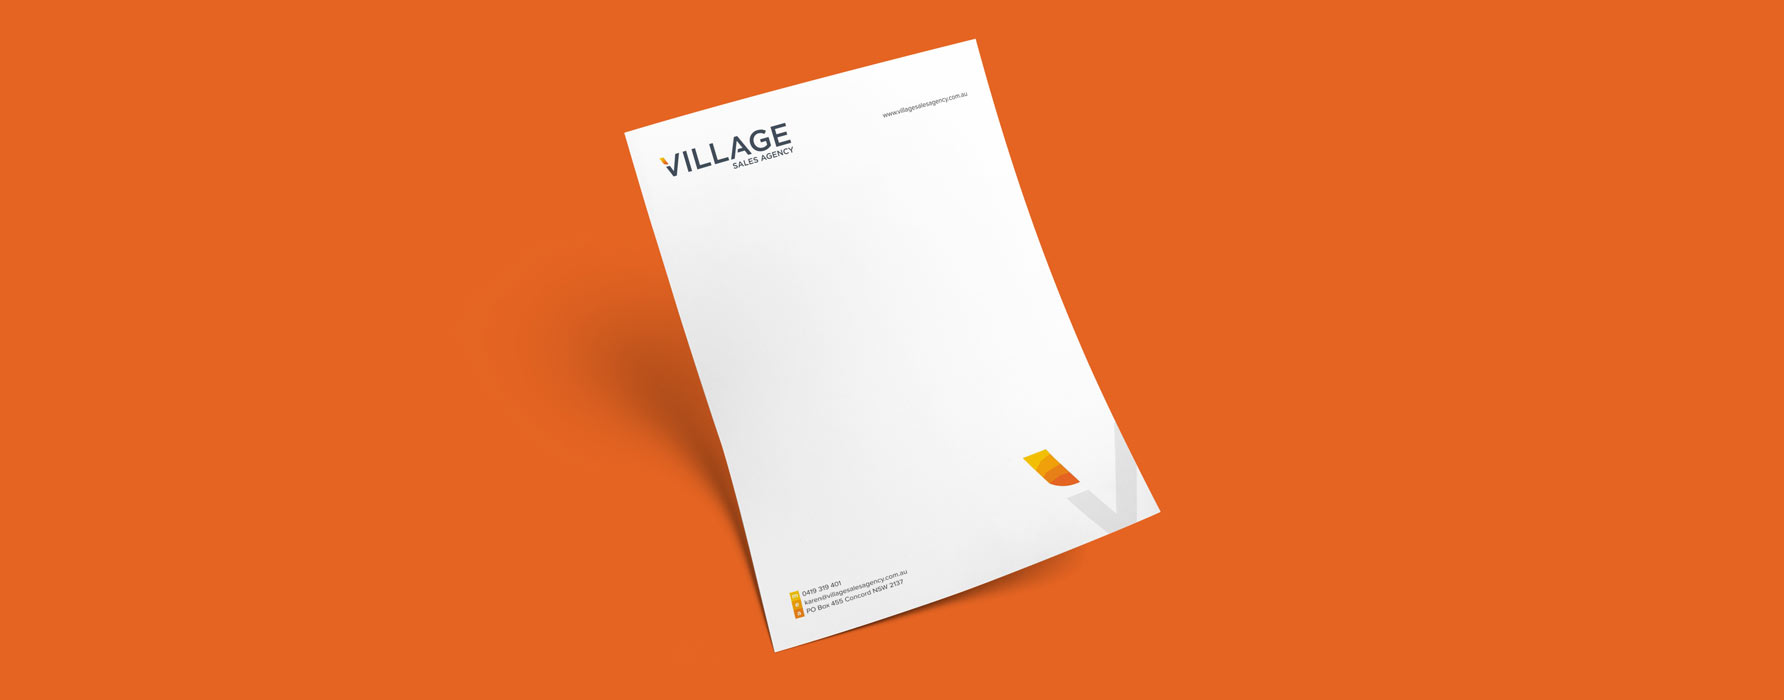 graphic design for village sale agency